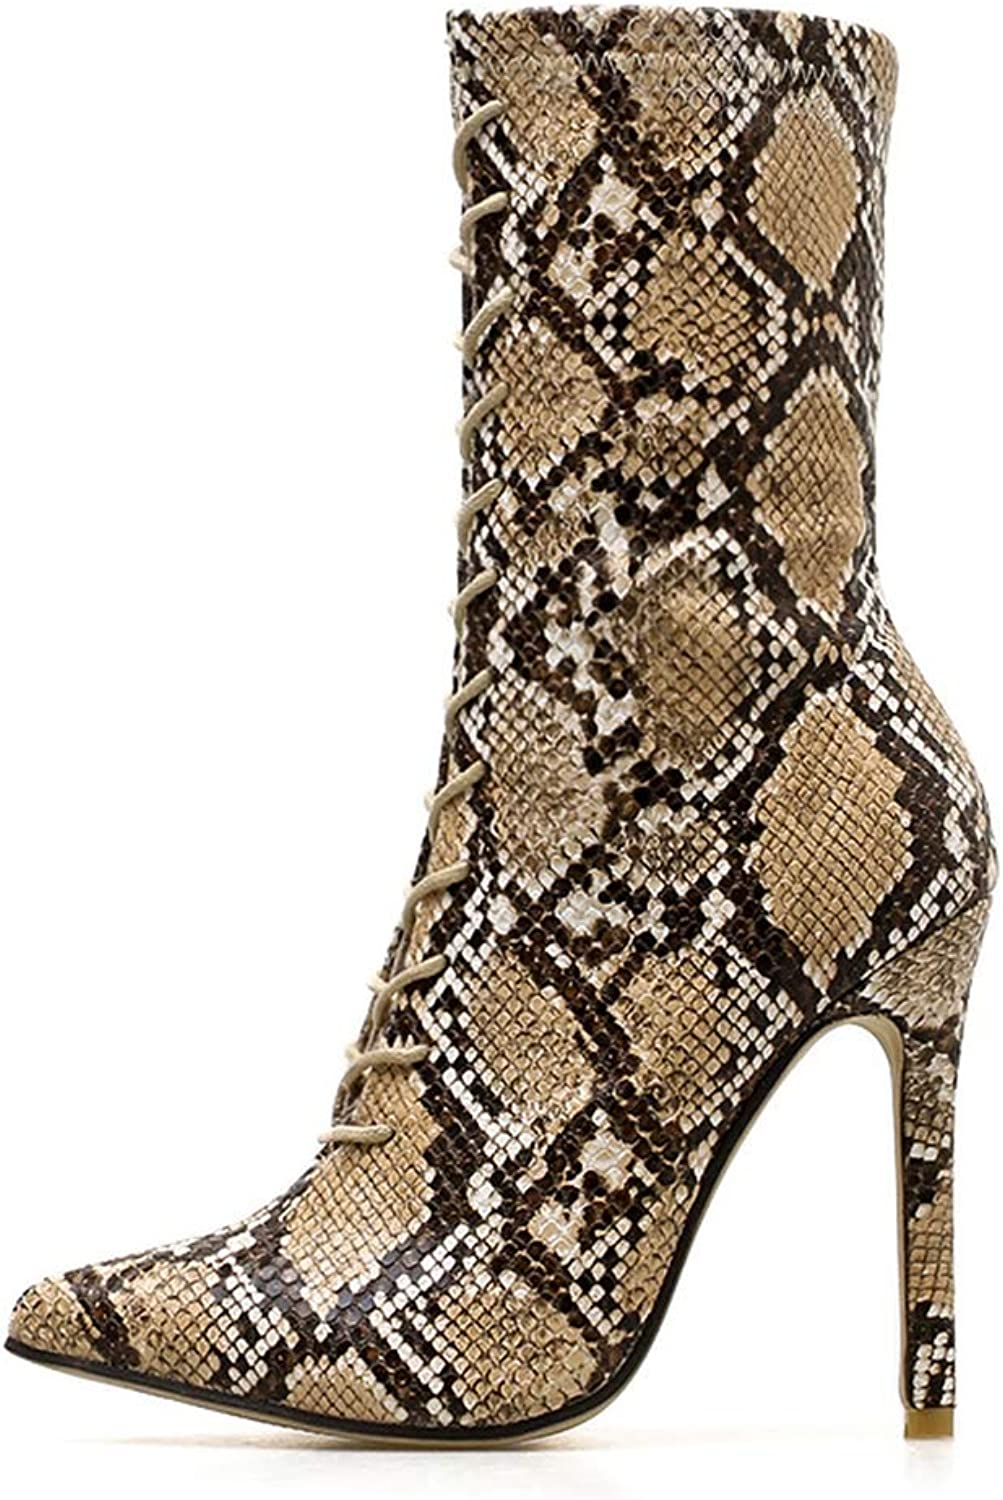 FAY WATERS Women's Winter Lace Up Pointed Toe Super High Thin Heels Snake Mid Calf Boots